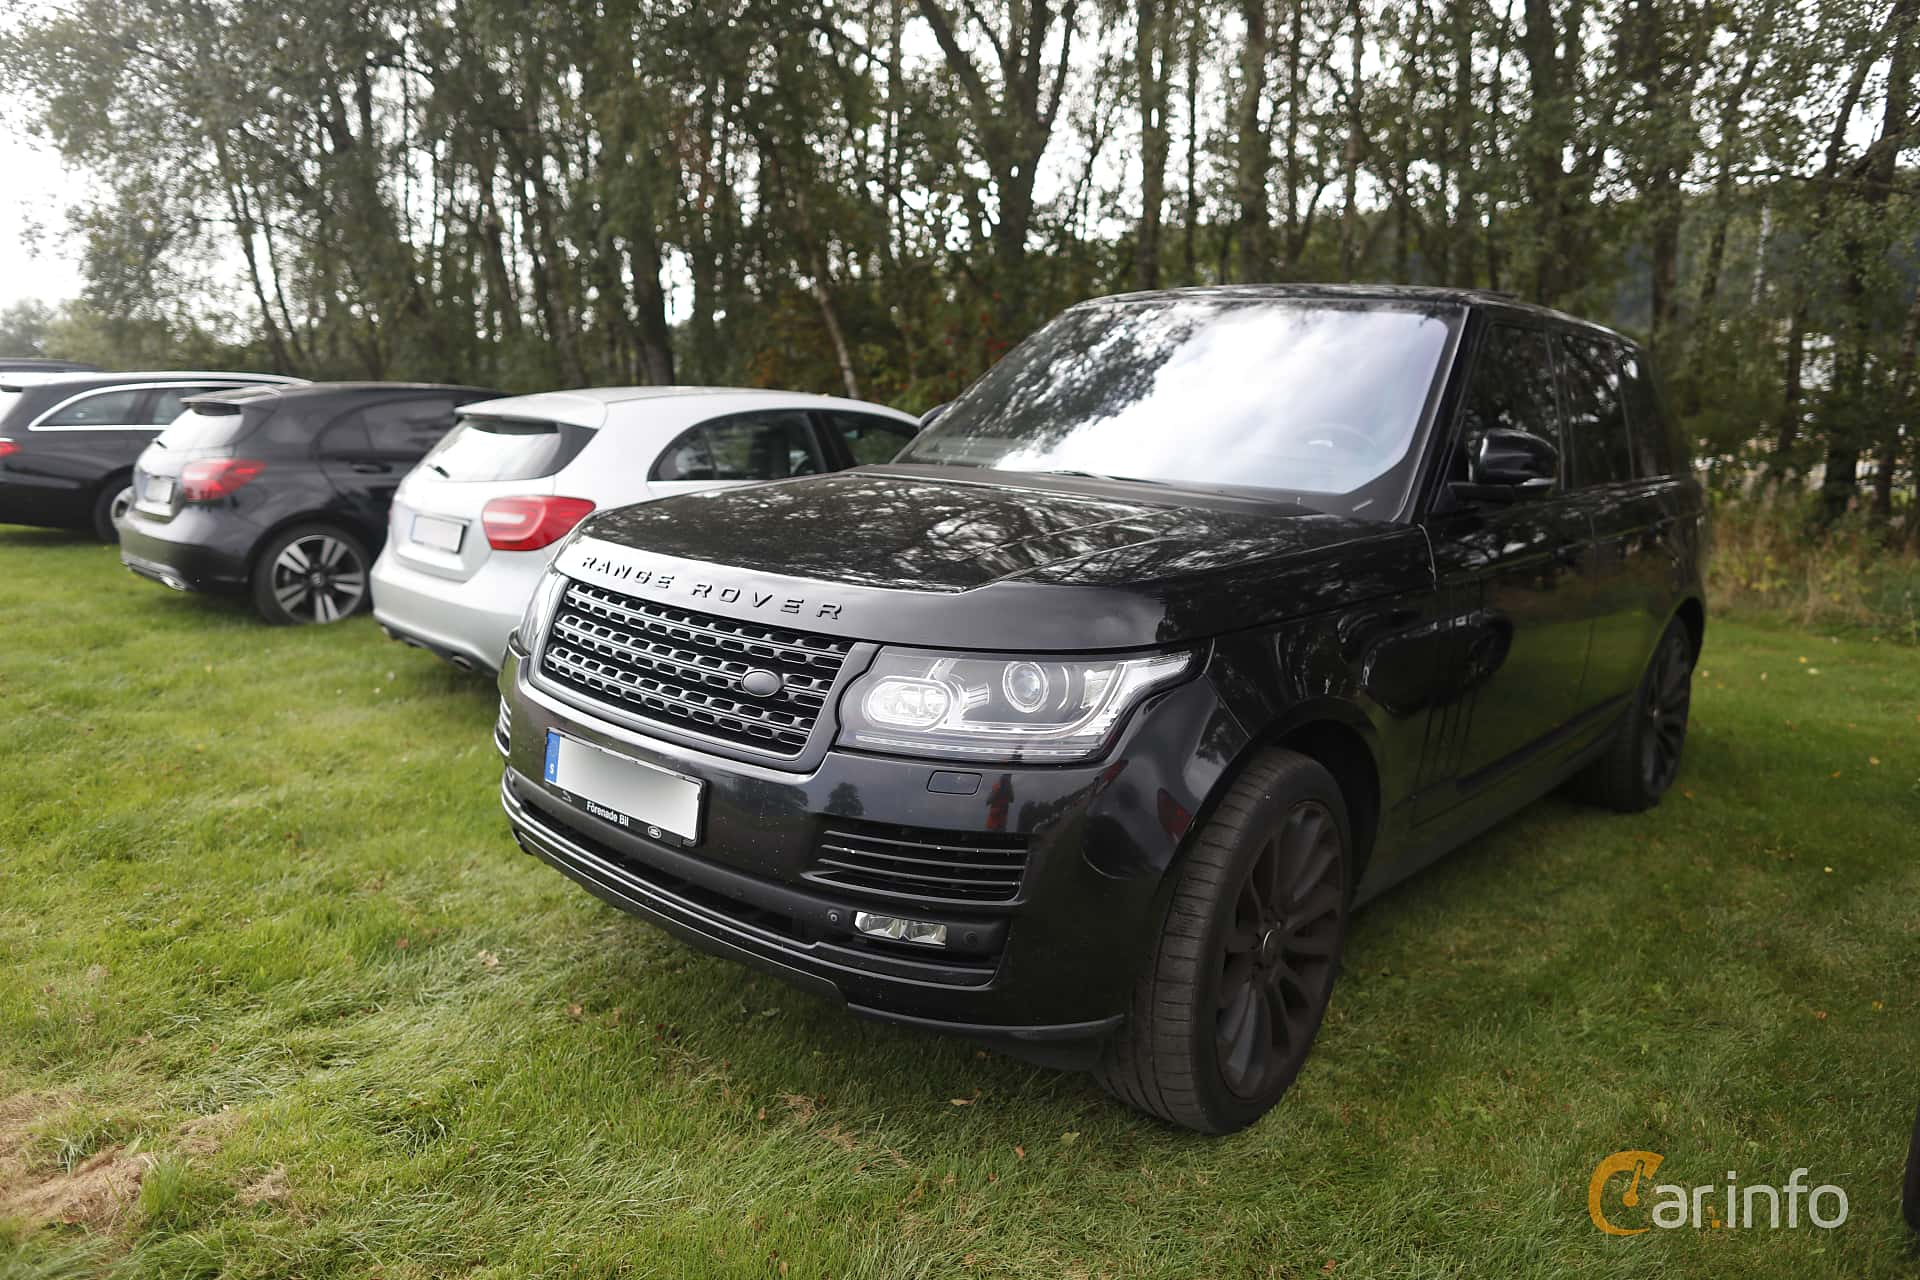 Front/Side  of Land Rover Range Rover 4.4 SDV8 4WD Automatic, 340ps, 2014 at Autoropa Racing day Knutstorp 2019